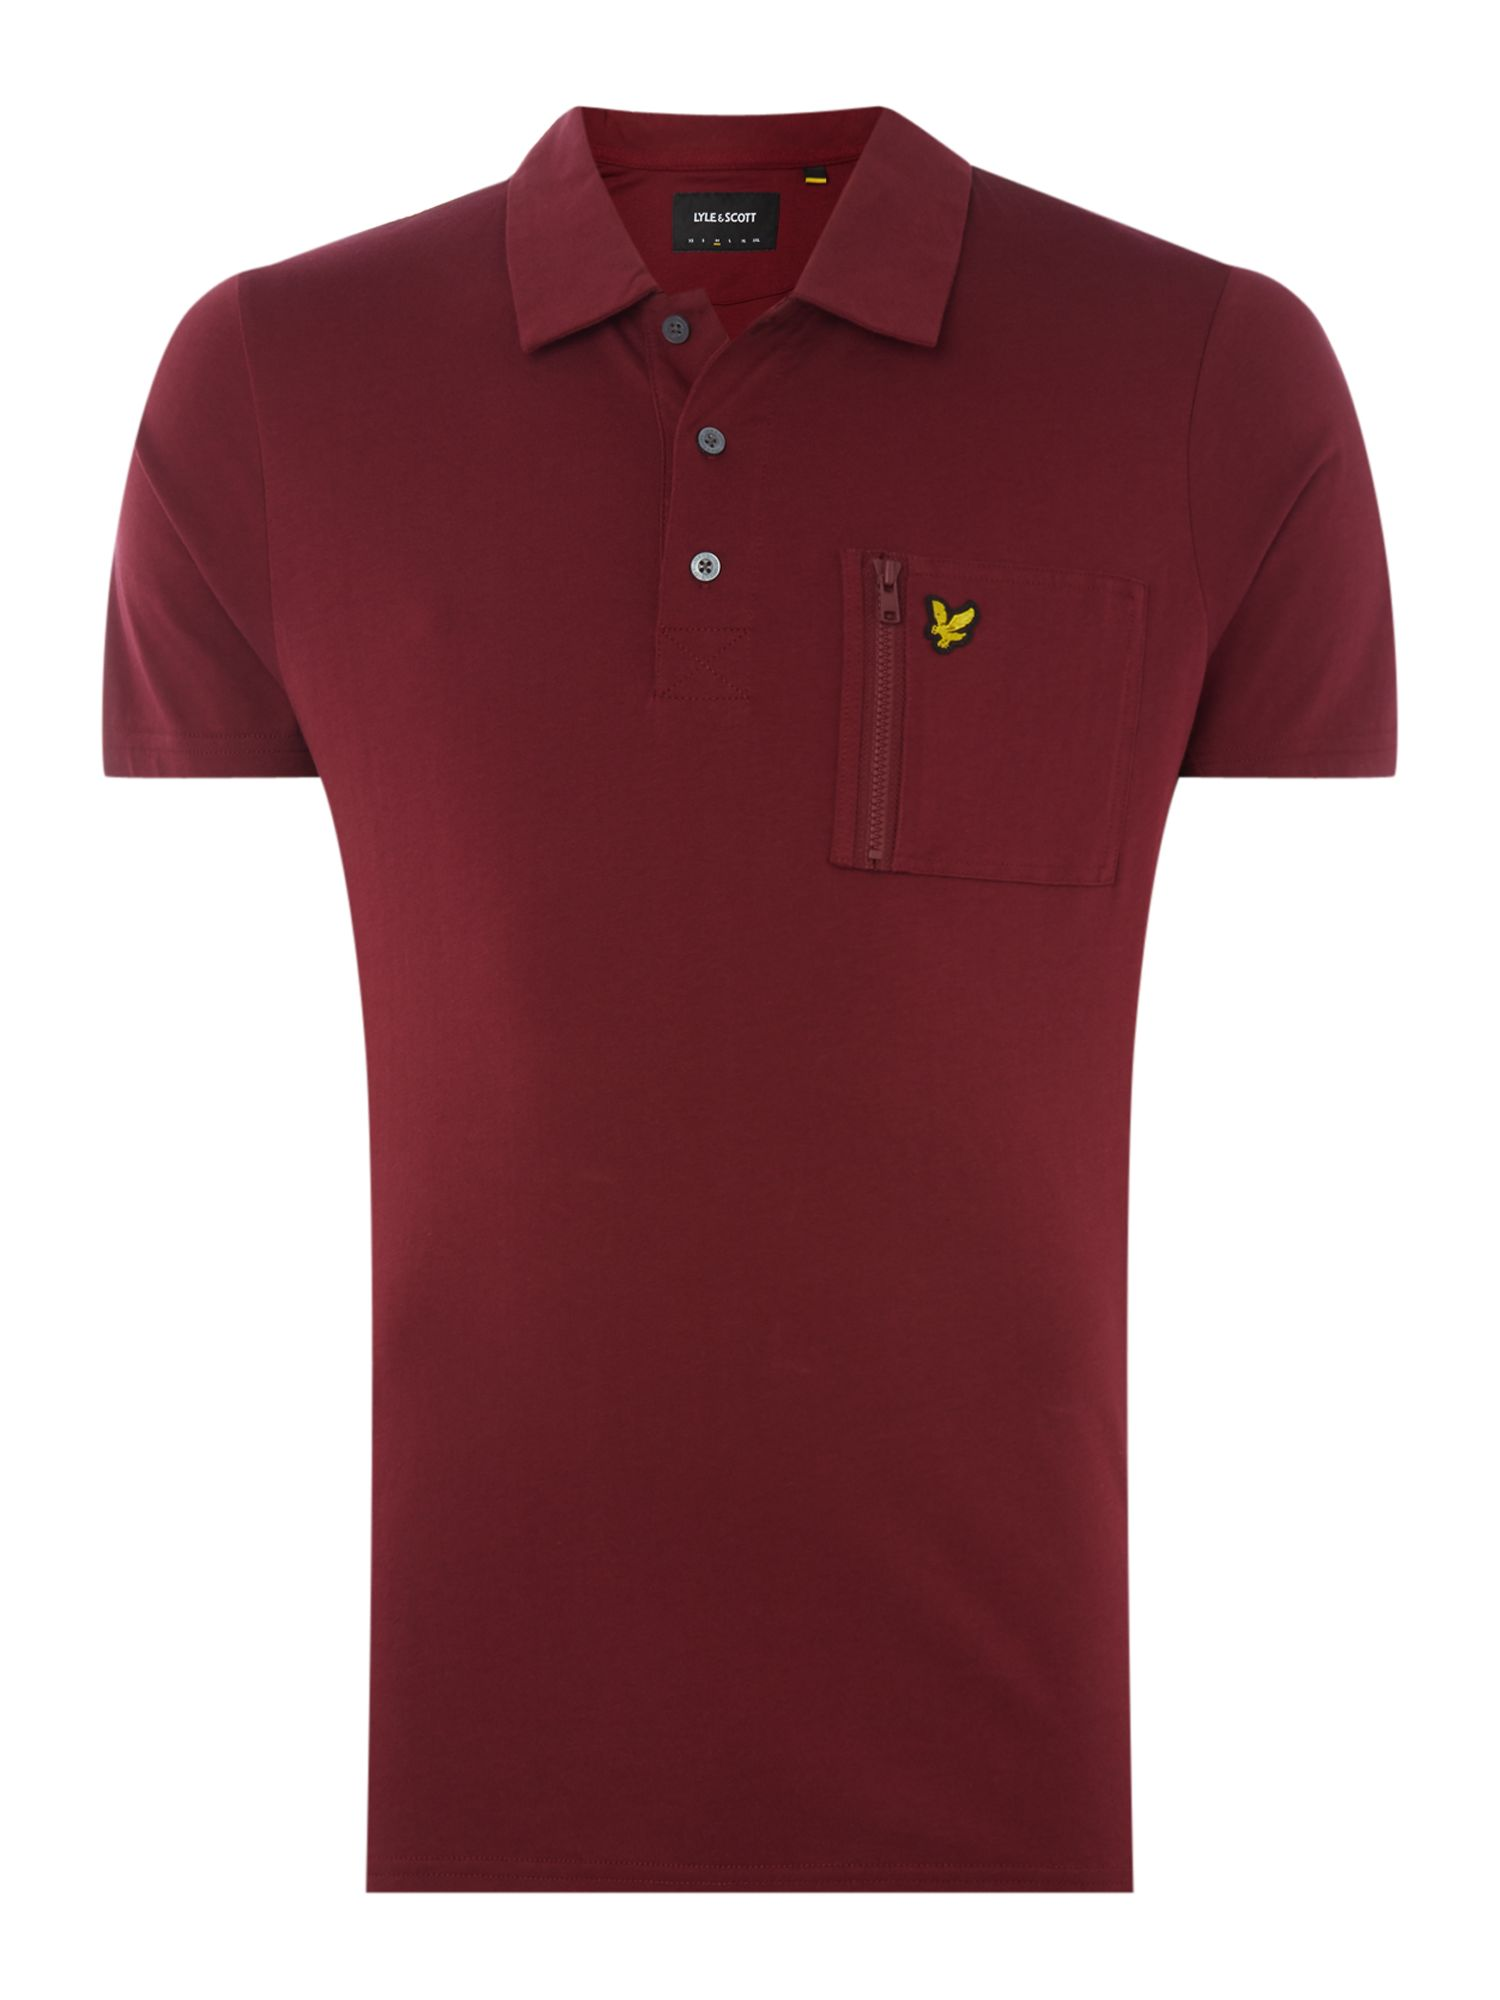 Men's Lyle and Scott Zip pocket short sleeve polo, Claret